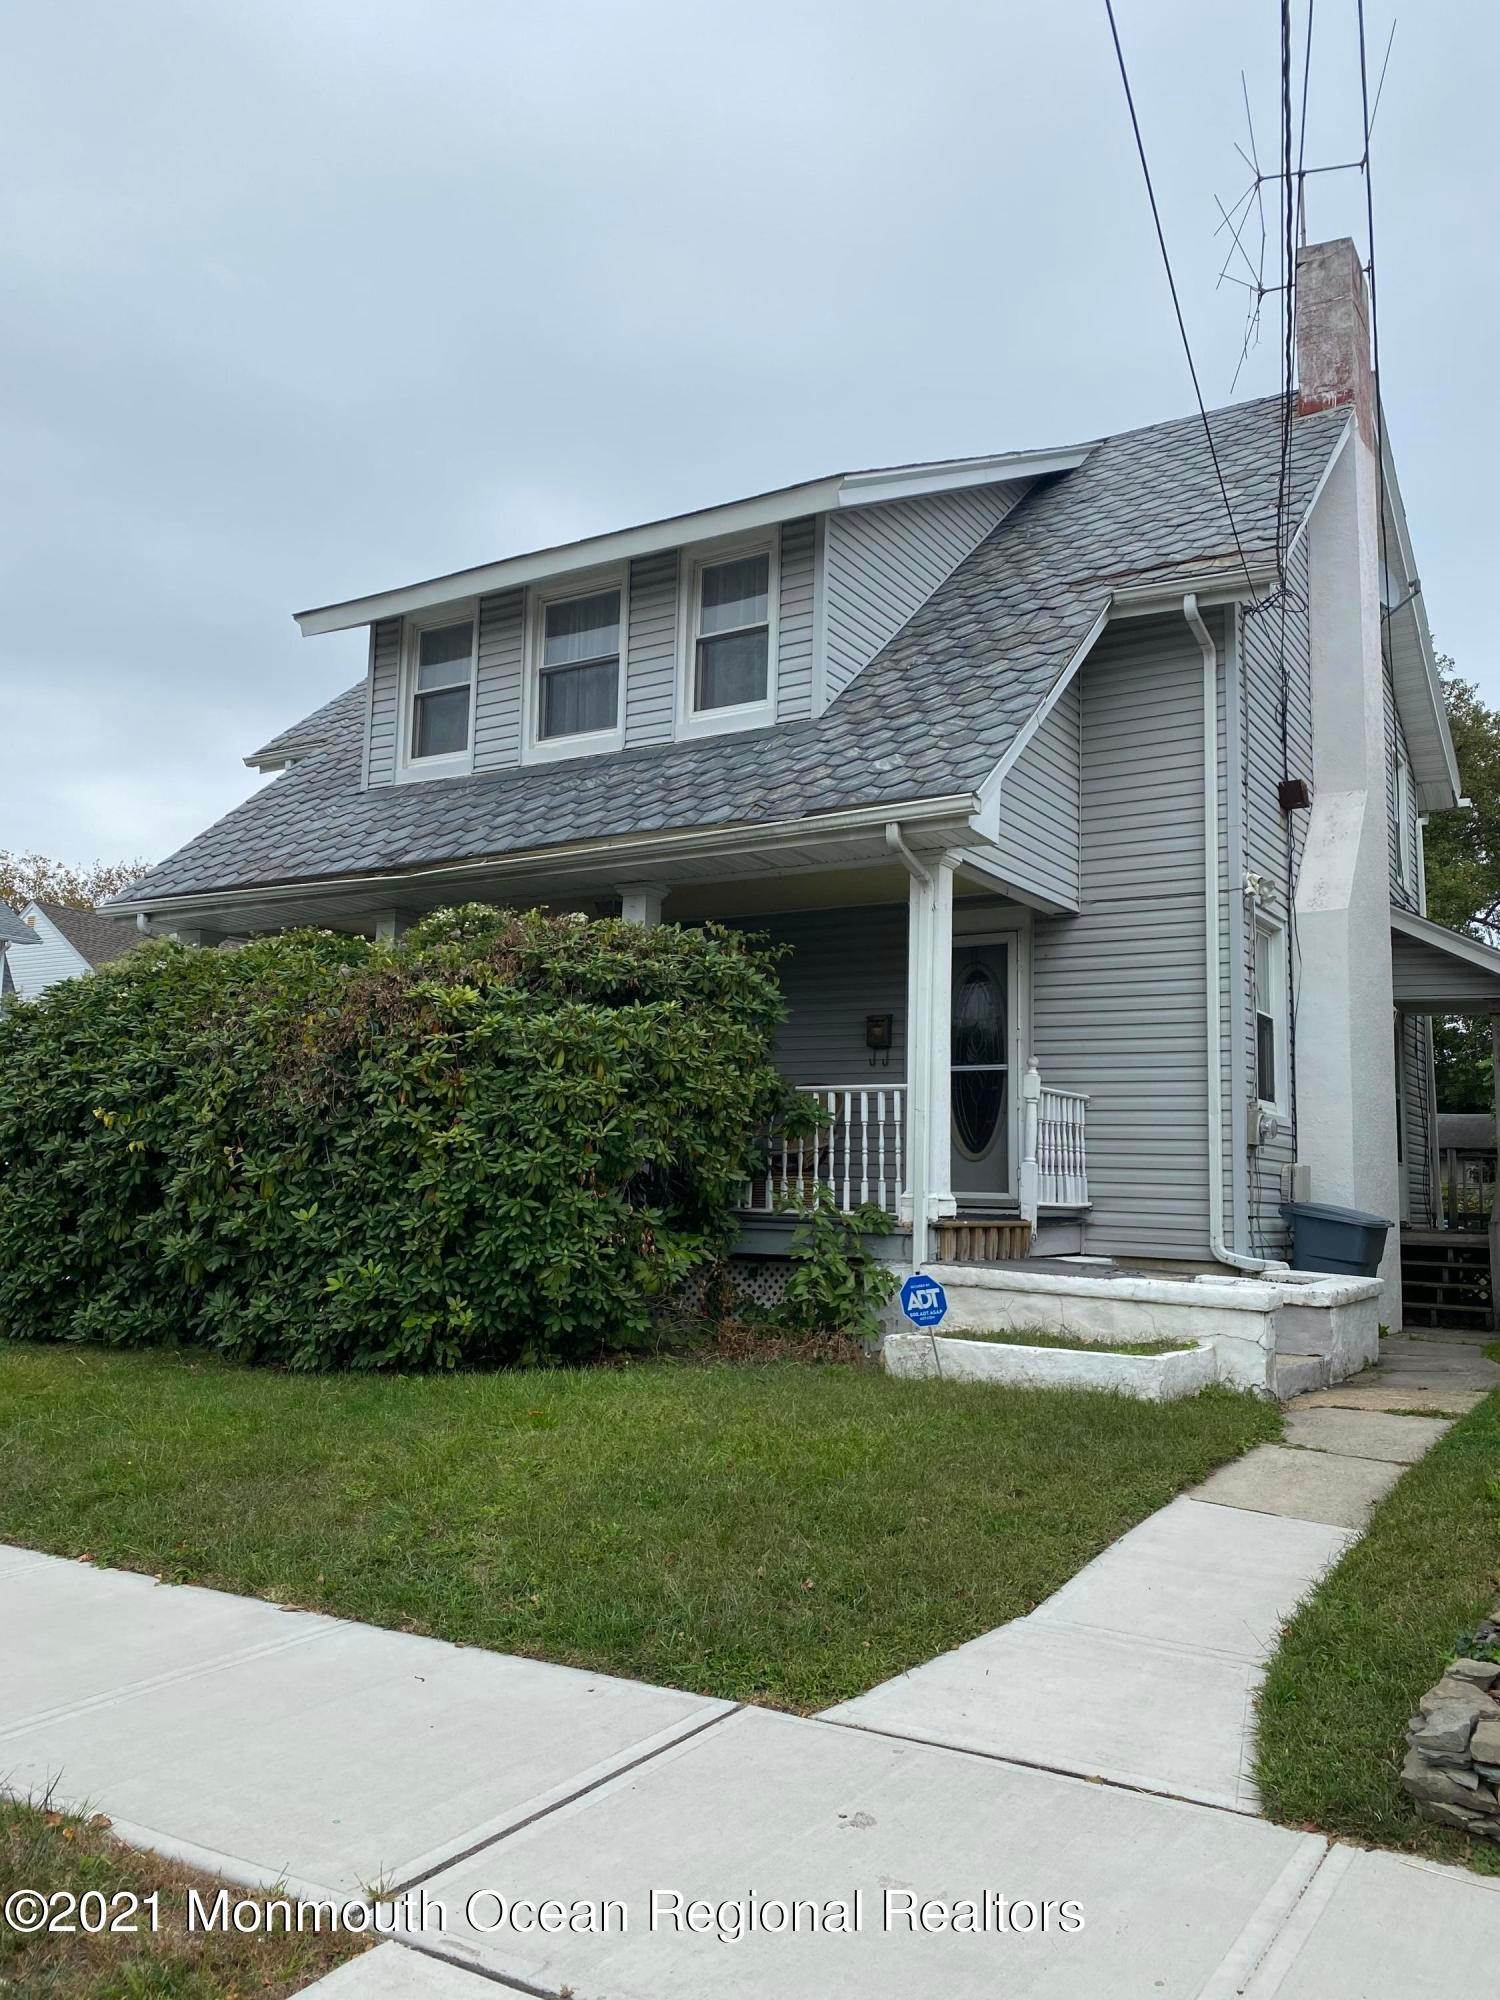 Single Family Home for Sale at 1308 Bridge Street Asbury Park, New Jersey, 07712 United States